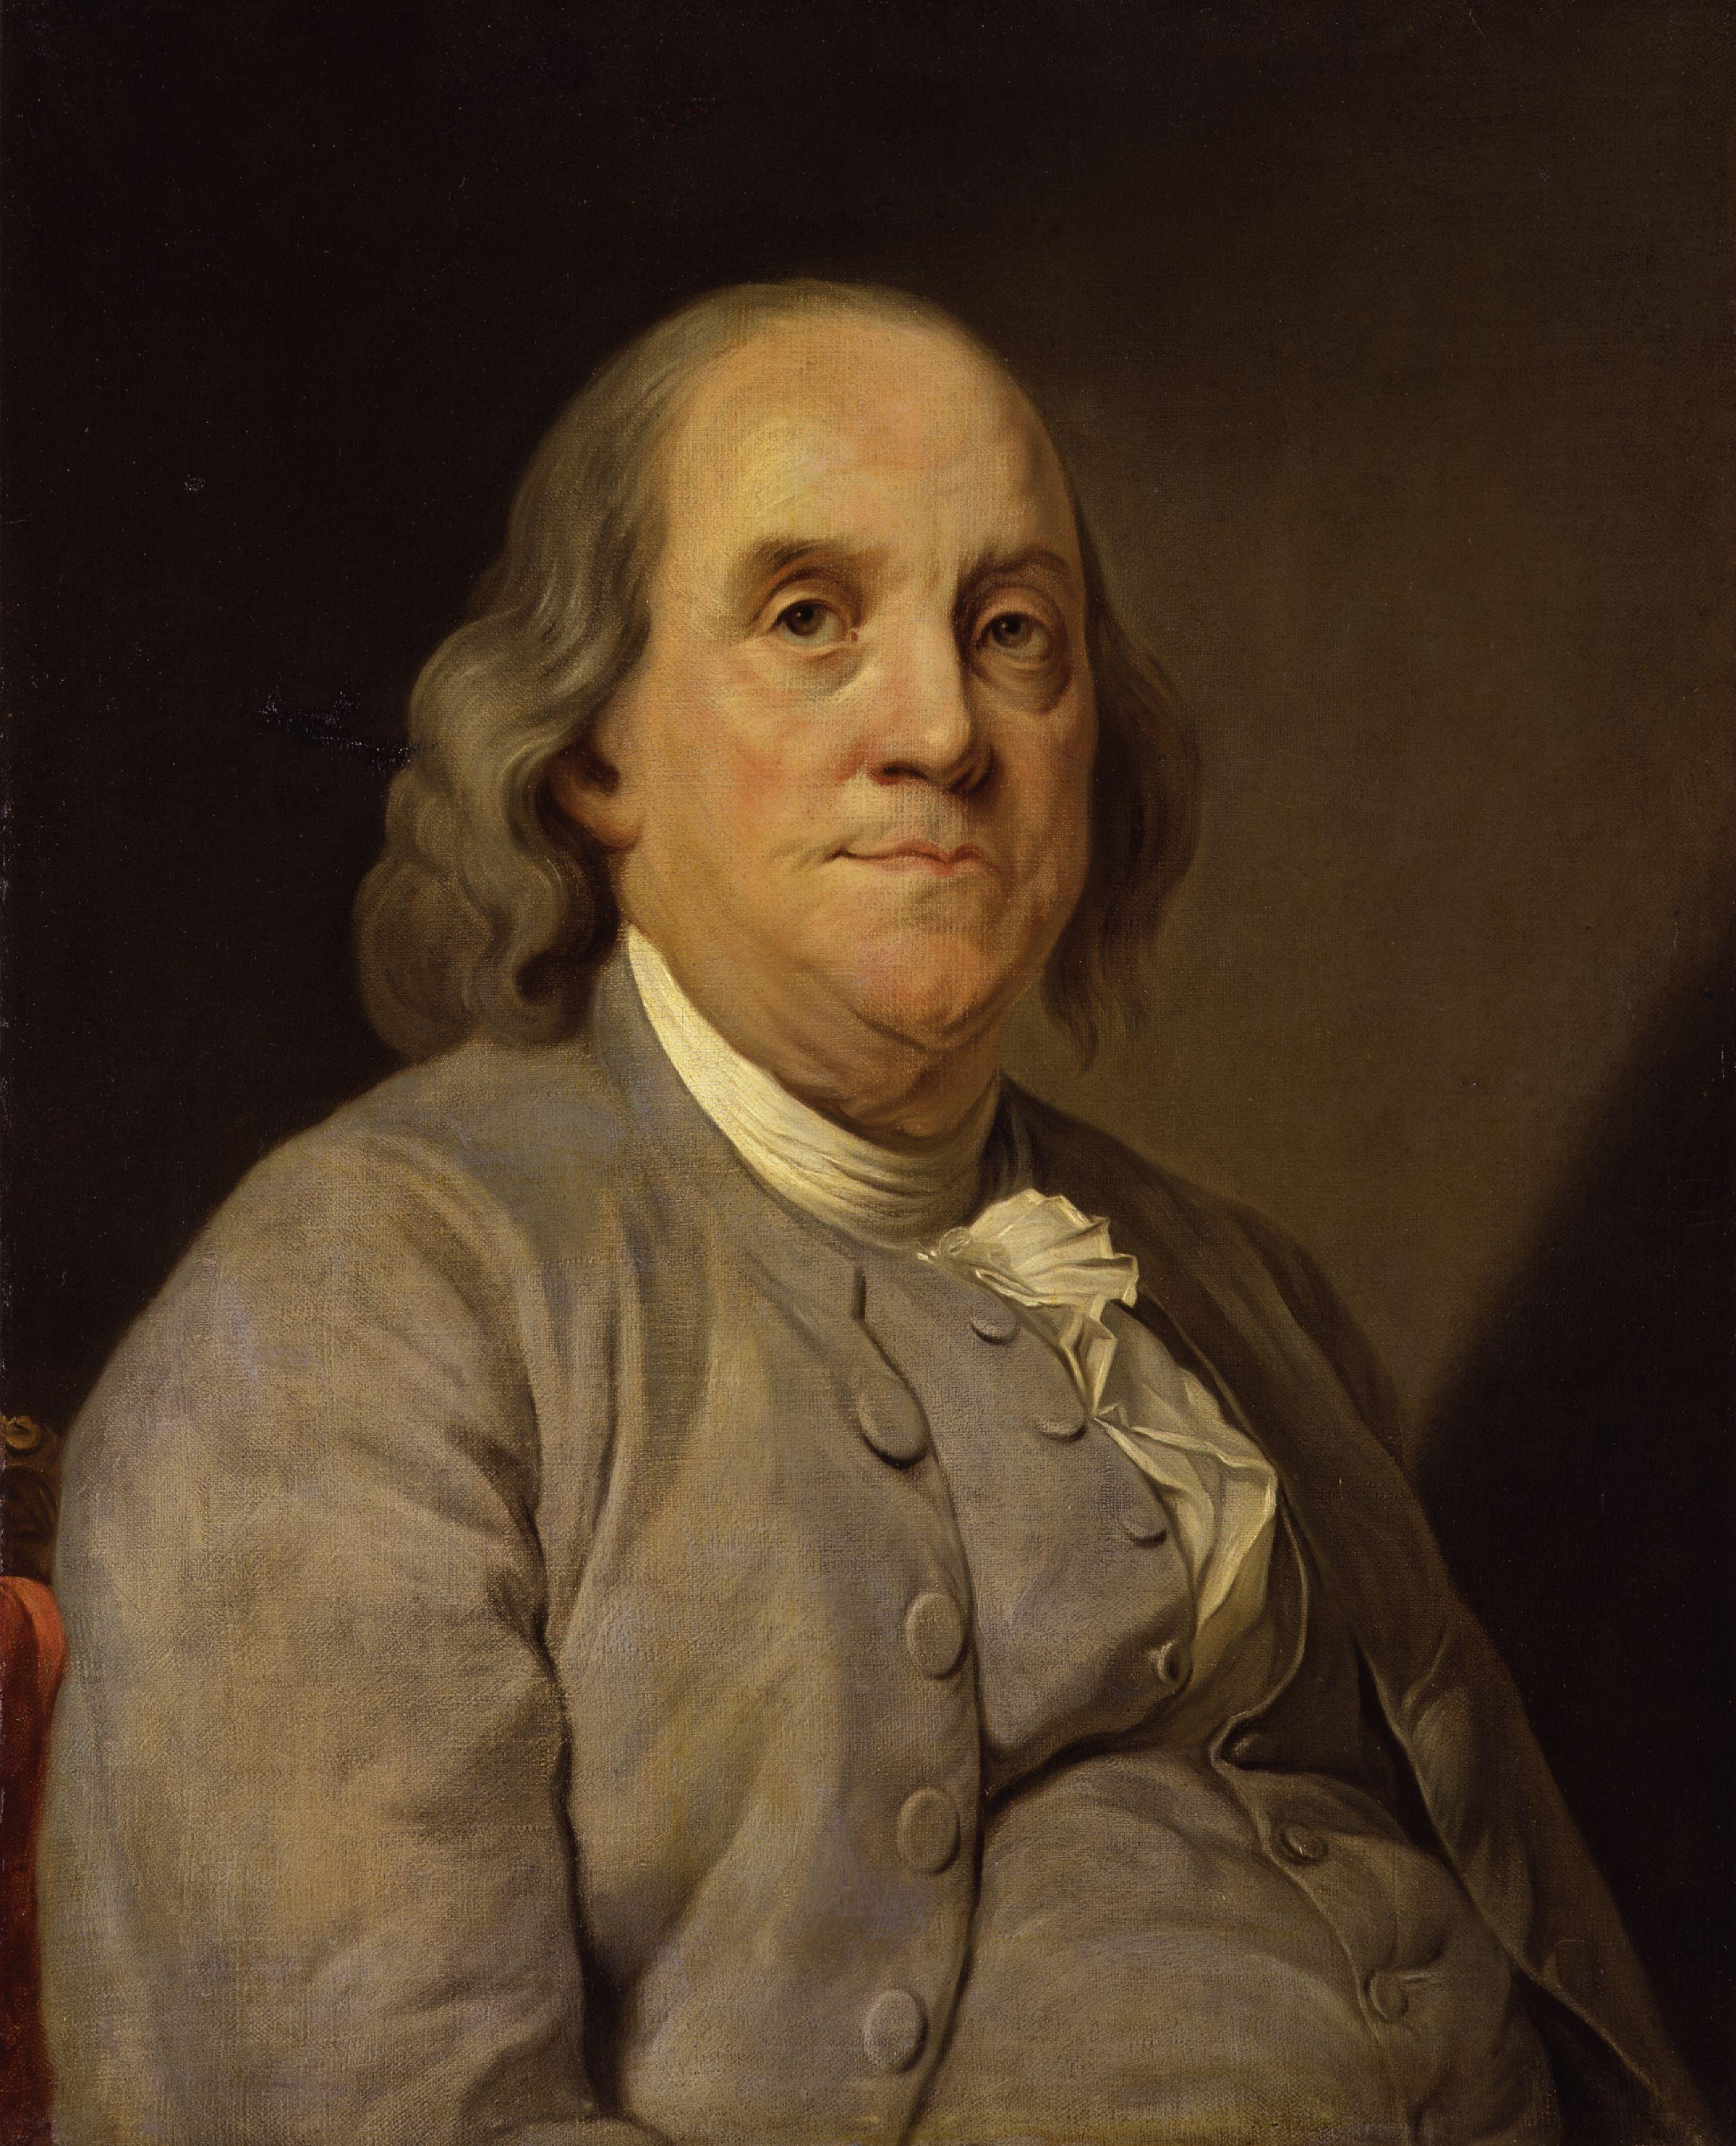 benjamin franklin birthday Celebrating Benjamin Franklin's Birthday on Founders Online  benjamin franklin birthday